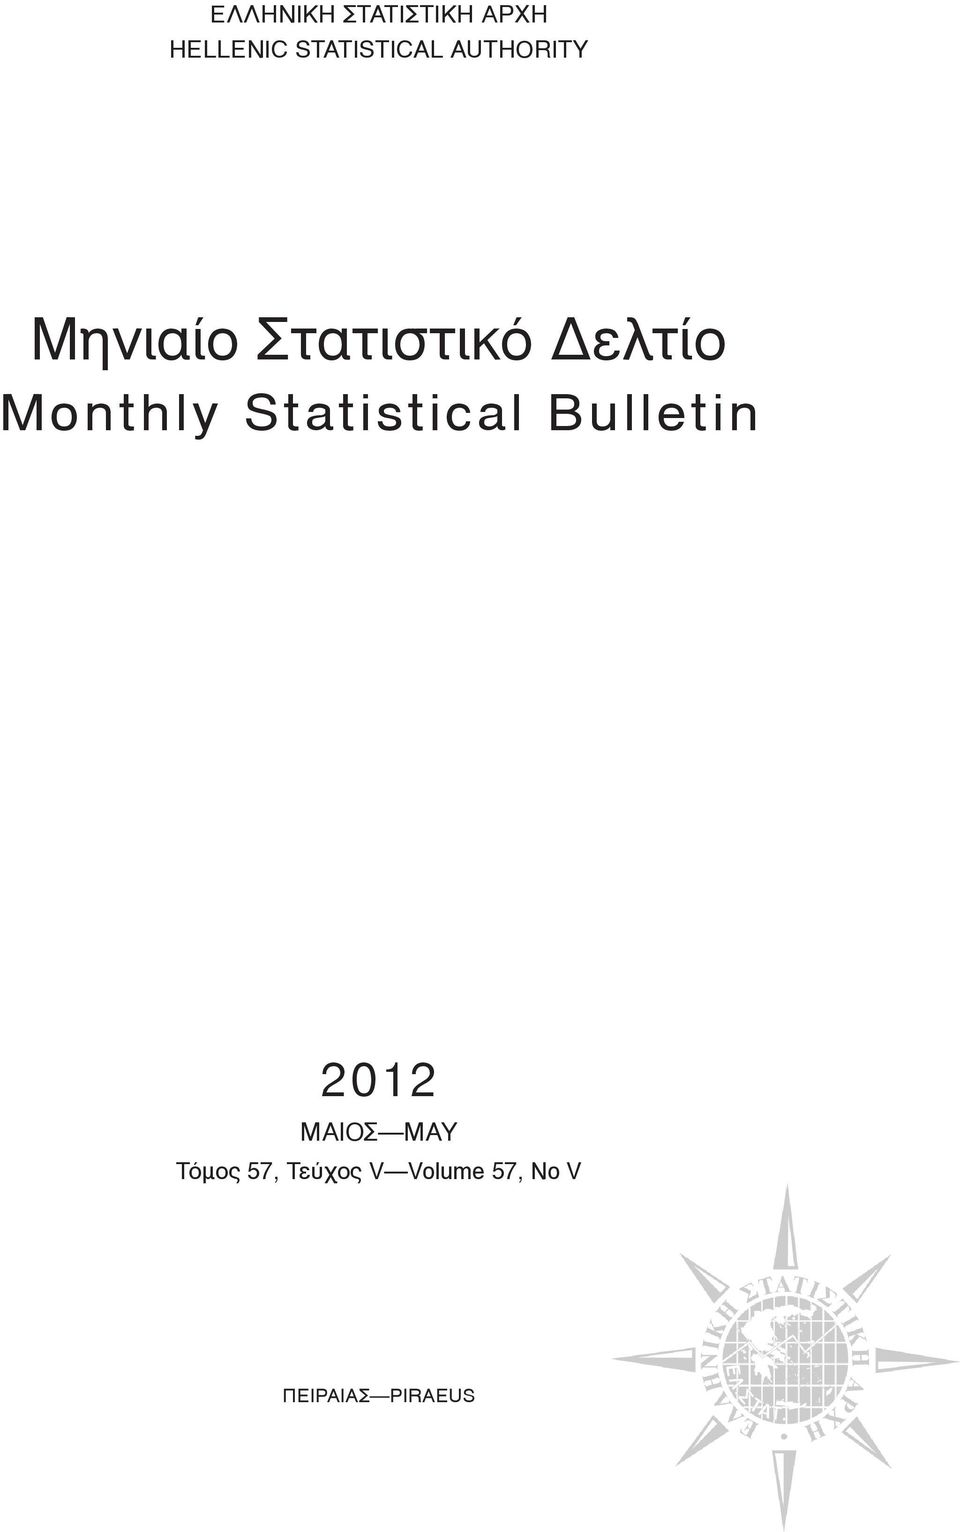 Δελτίο Monthly Statistical Bulletin 2012